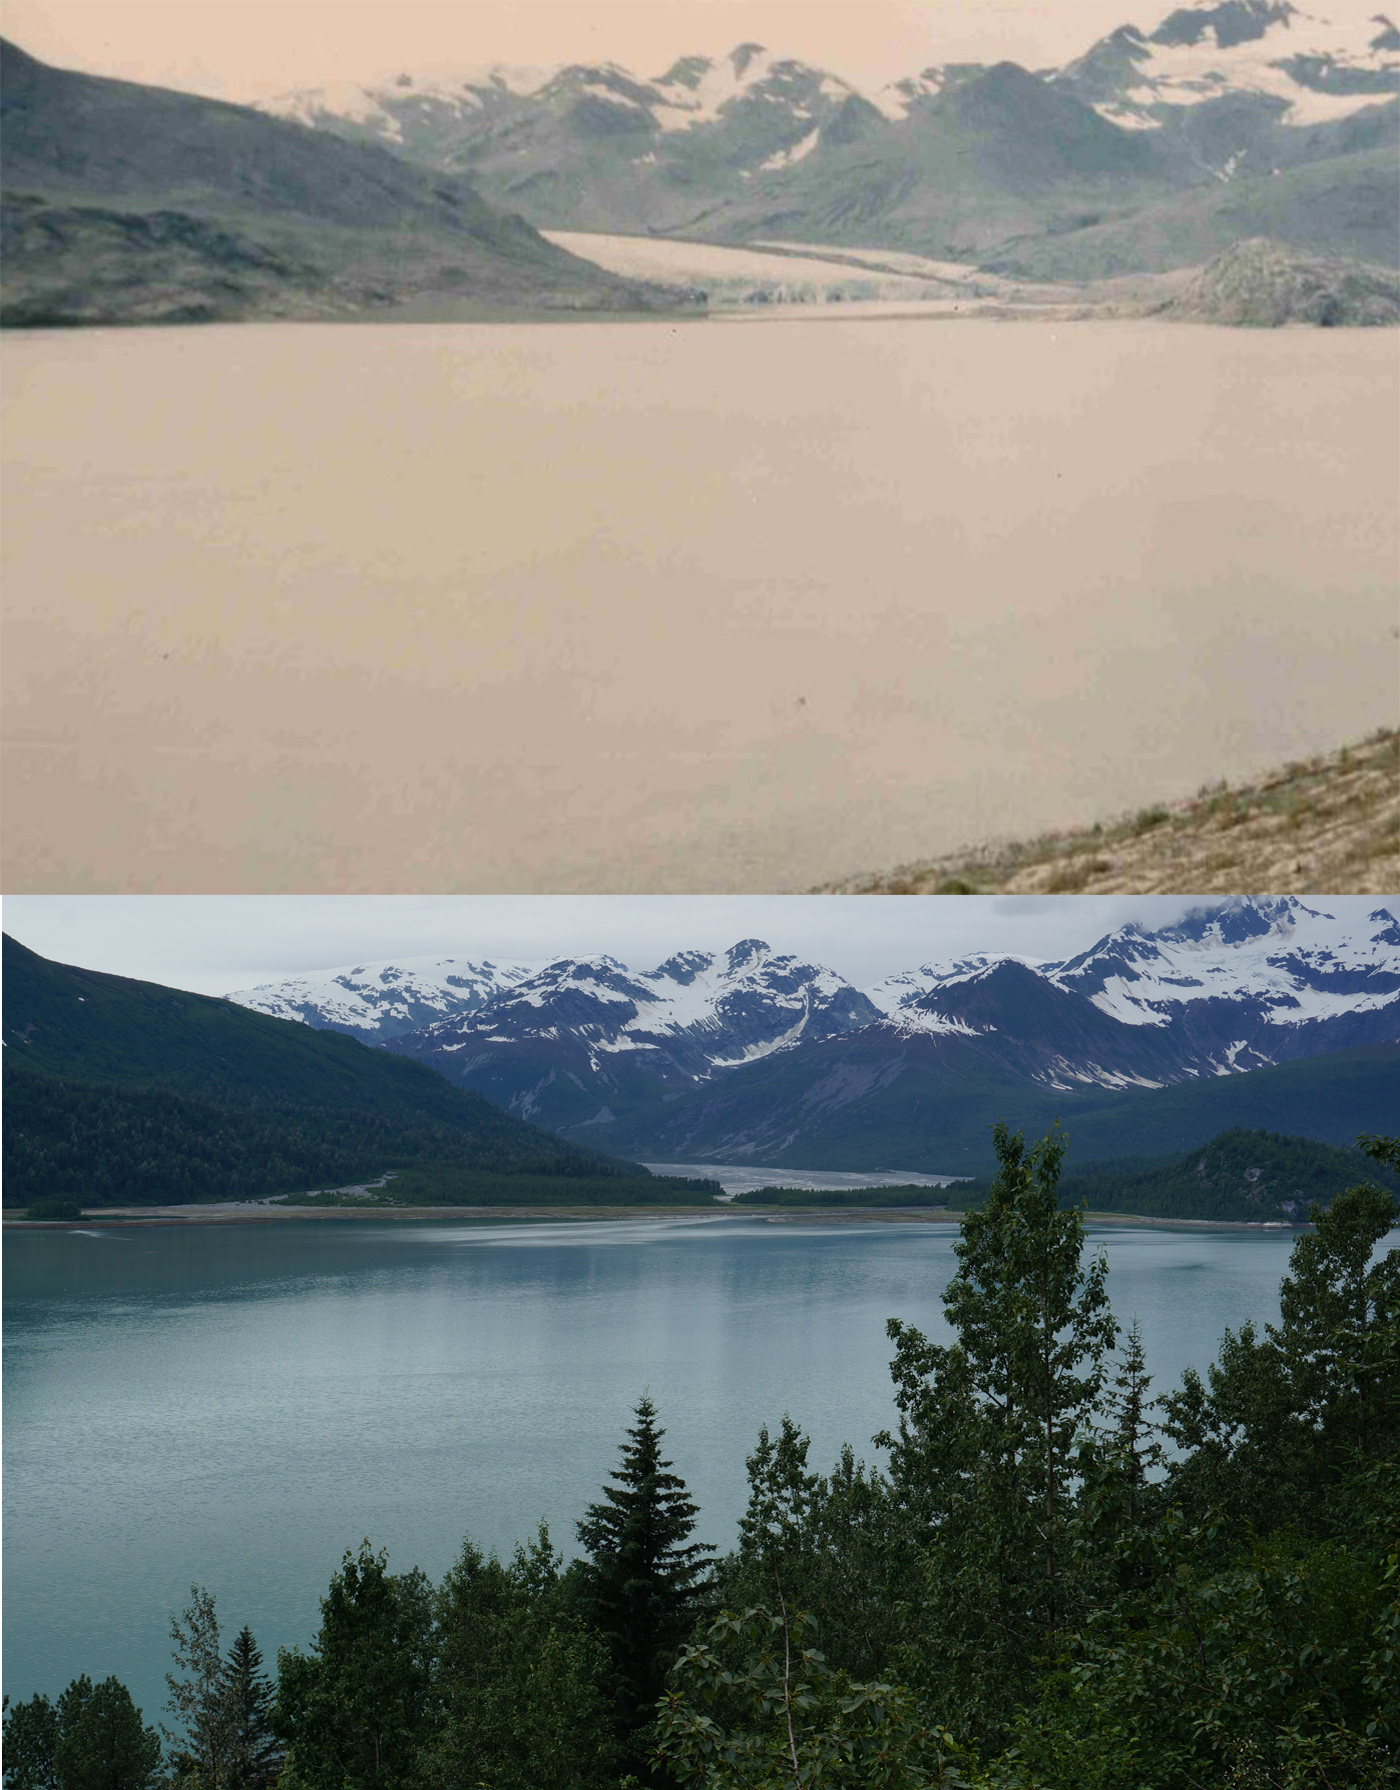 Hugh Miller Inlet in 1941 and 2016. Note the glacier in 1941 was near the island in 1916, and retreated considerably by the time the photo was taken. It is not visible in 2016, only mudflats remain in the distance.